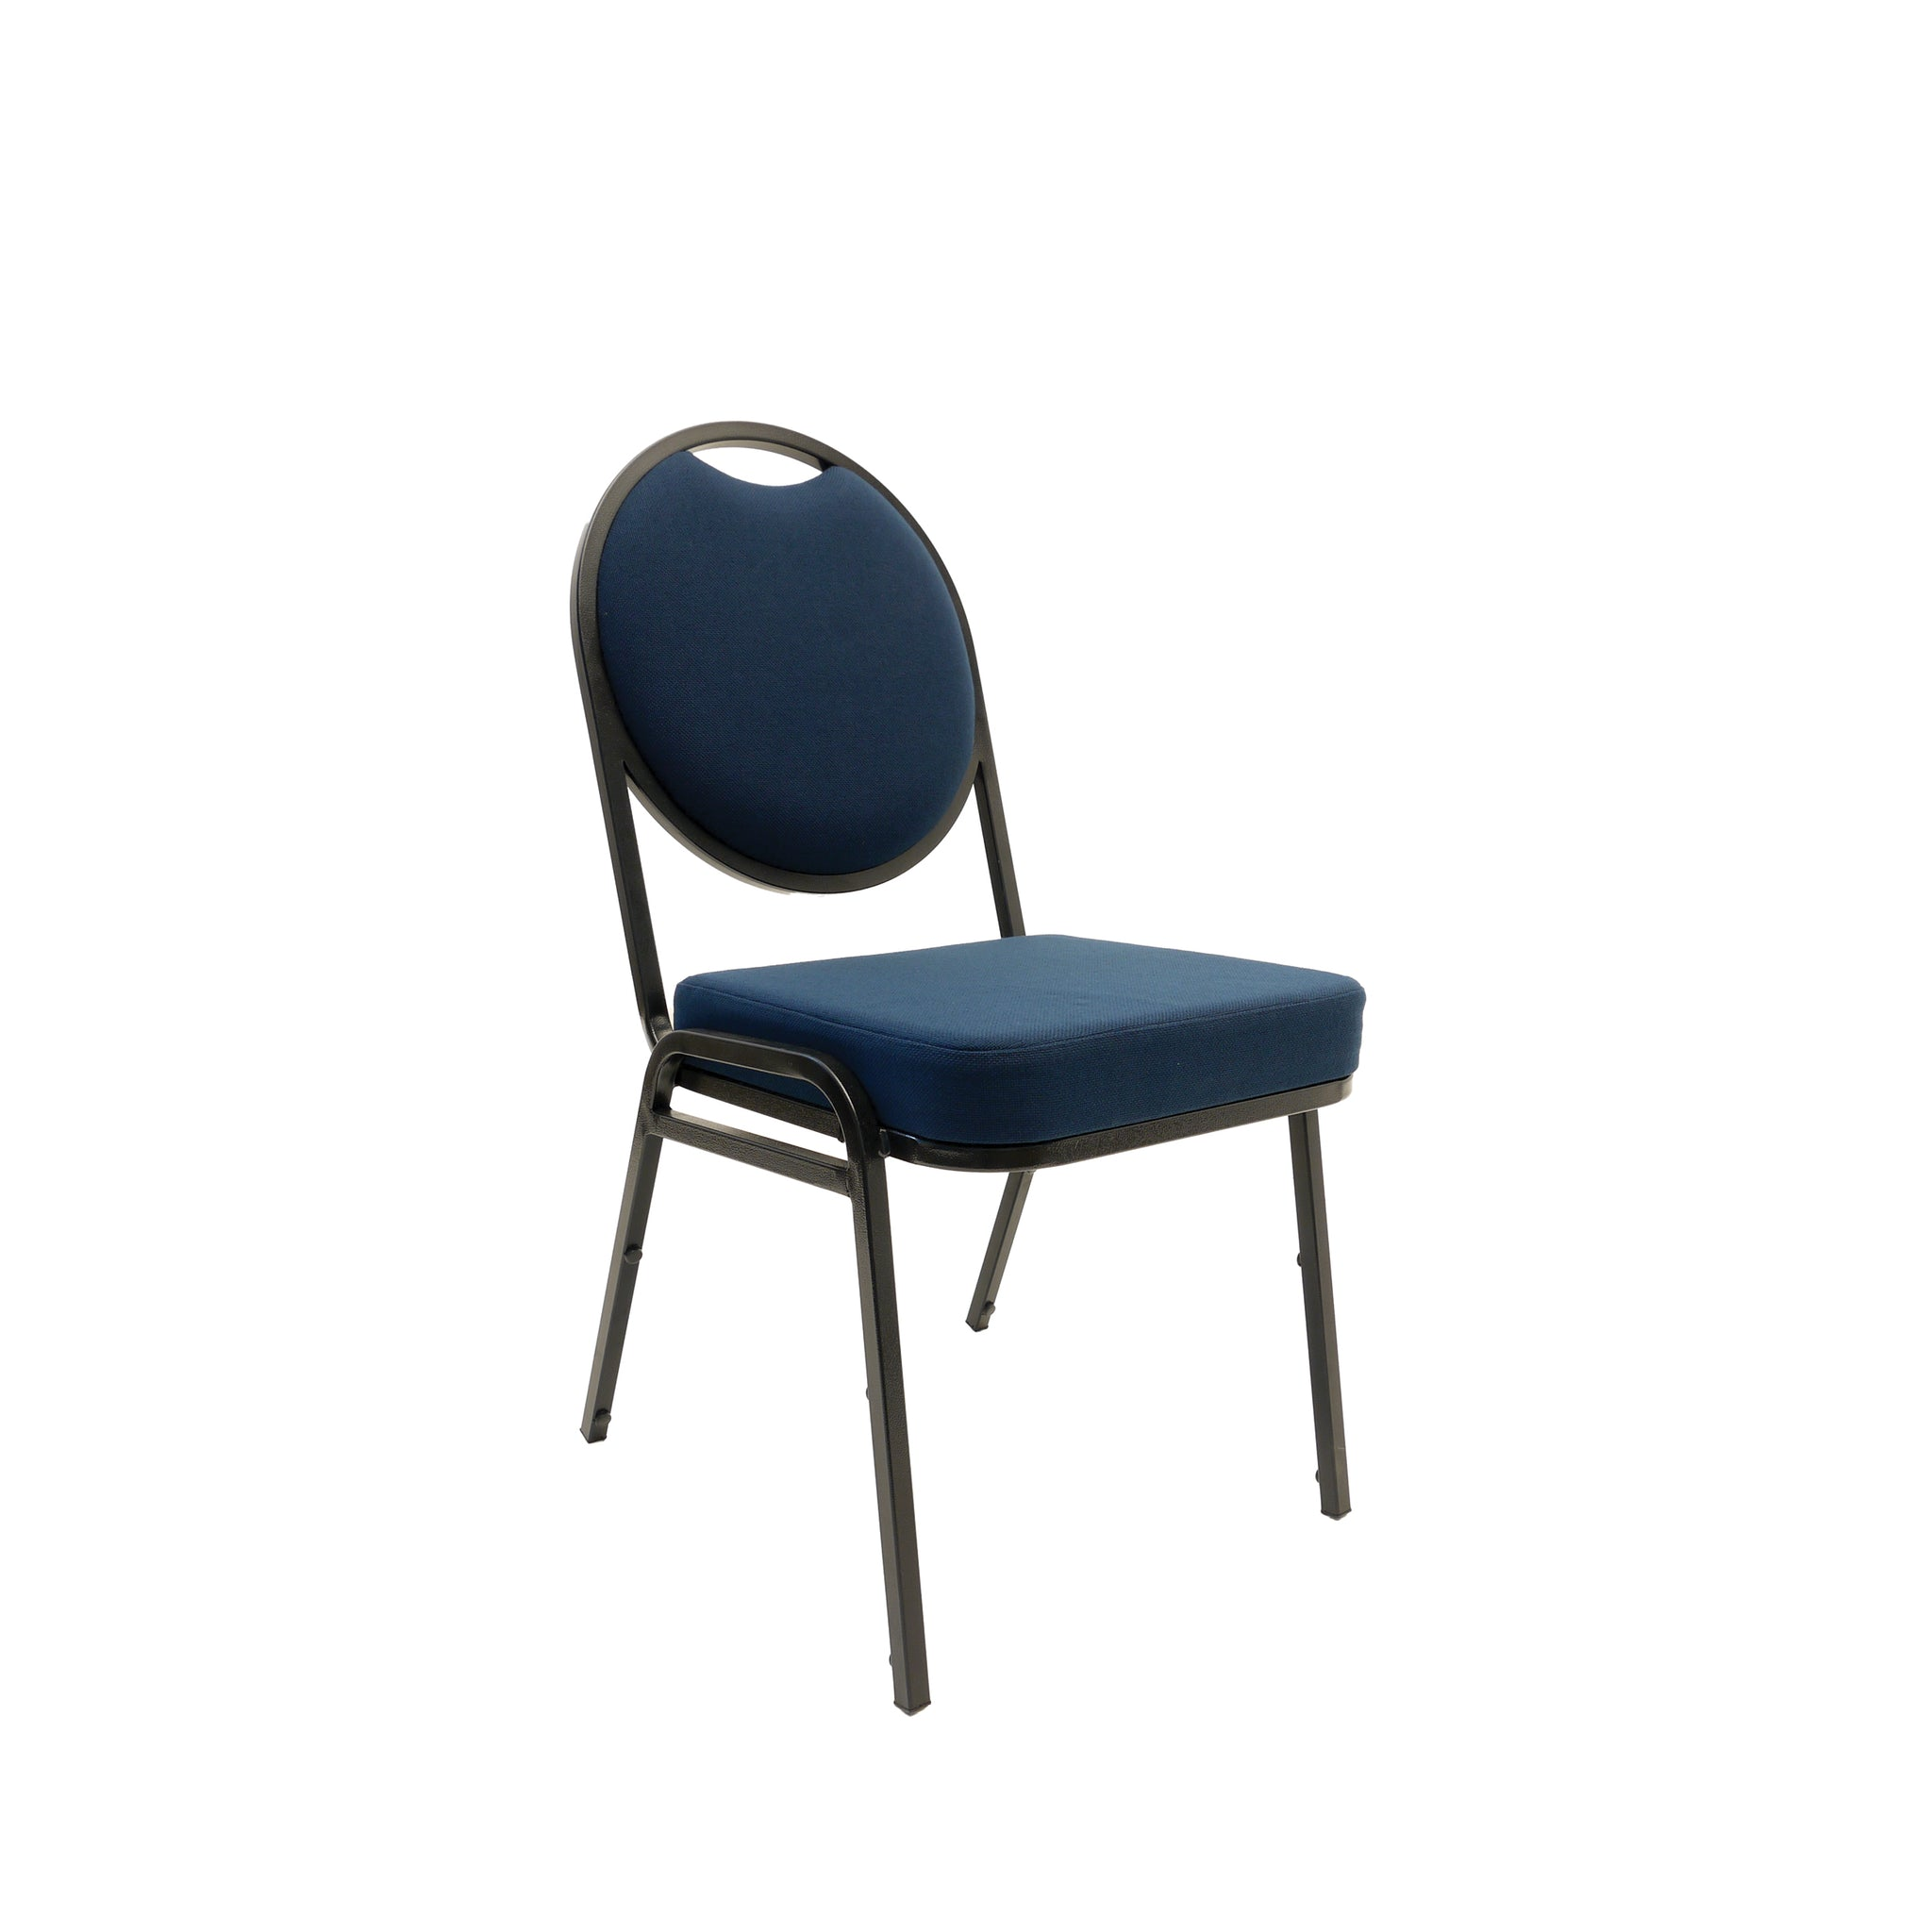 Hedcor Taurus chair